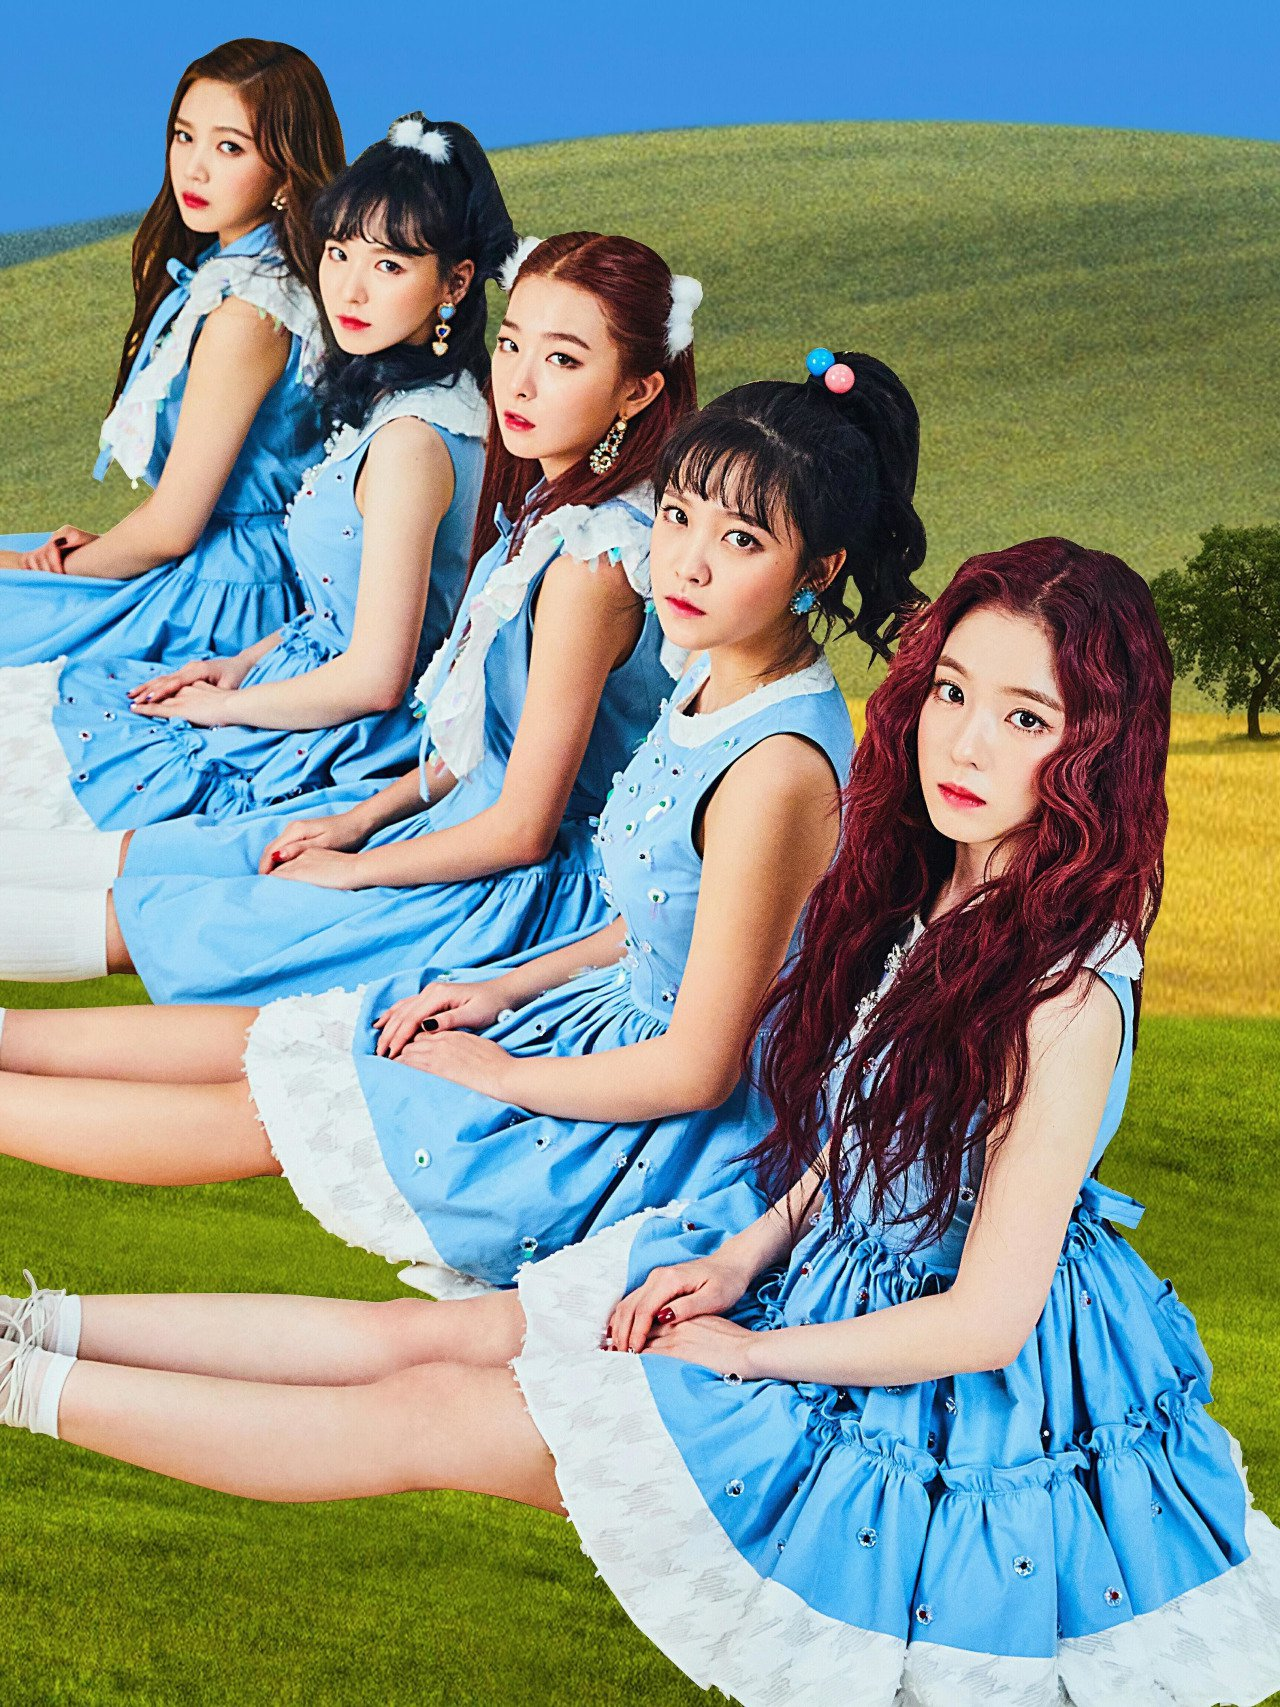 Rookie (Song) - Red Velvet   page 2 of 3 - Asiachan KPOP Image Board